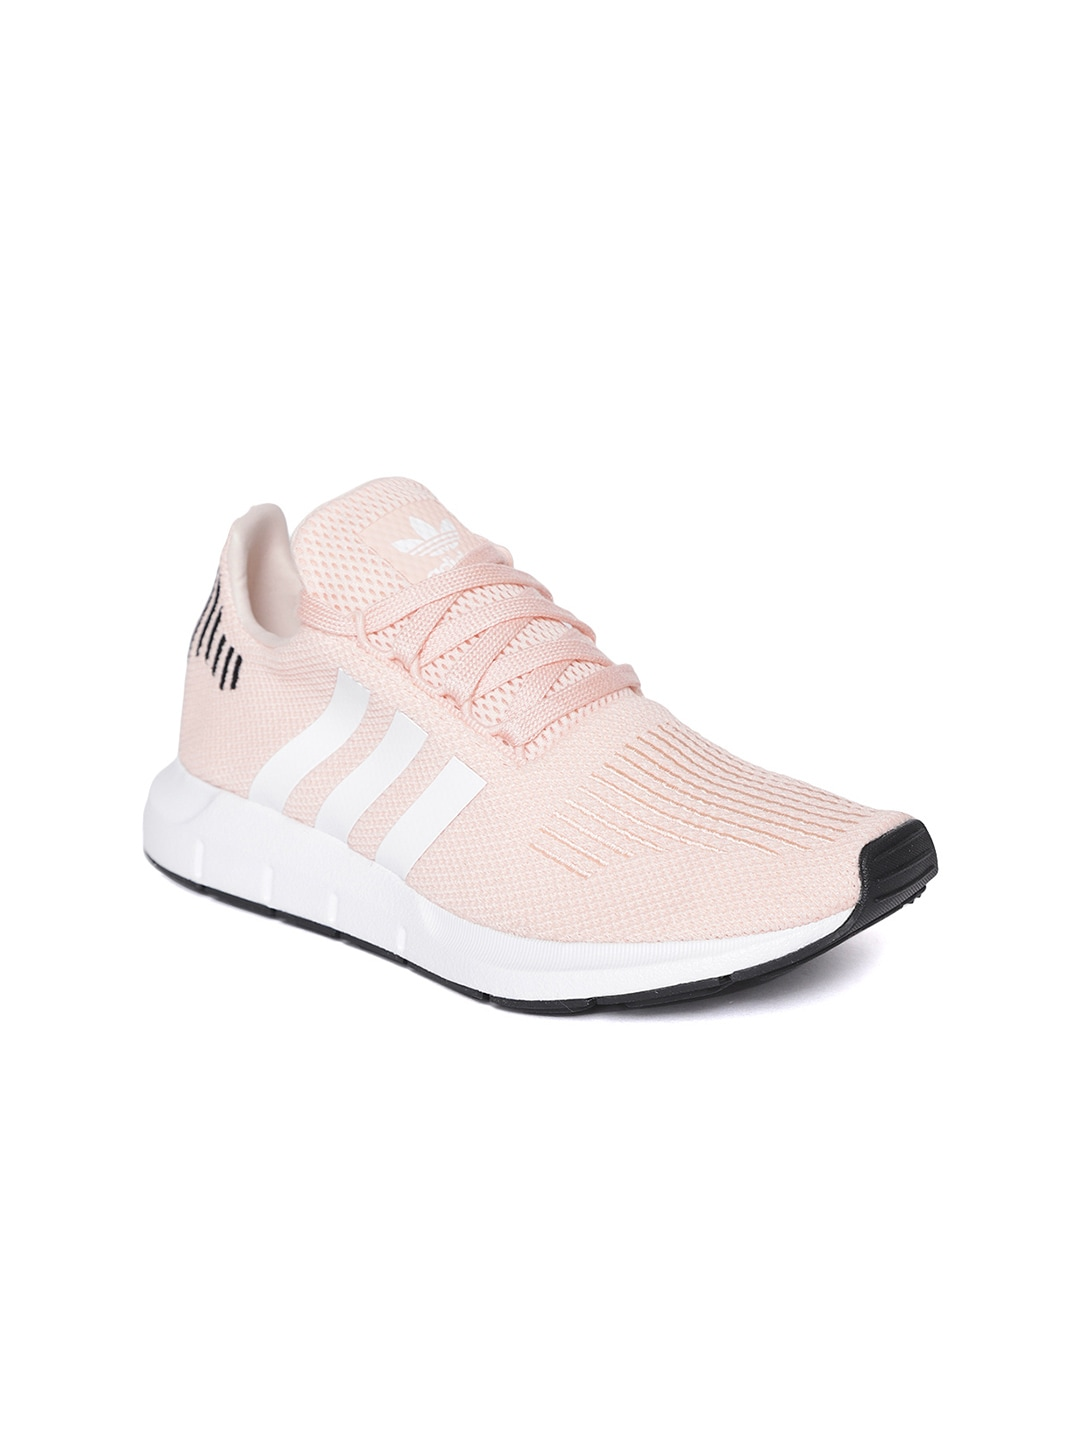 516af4ccd Swift Shoes - Buy Swift Shoes online in India